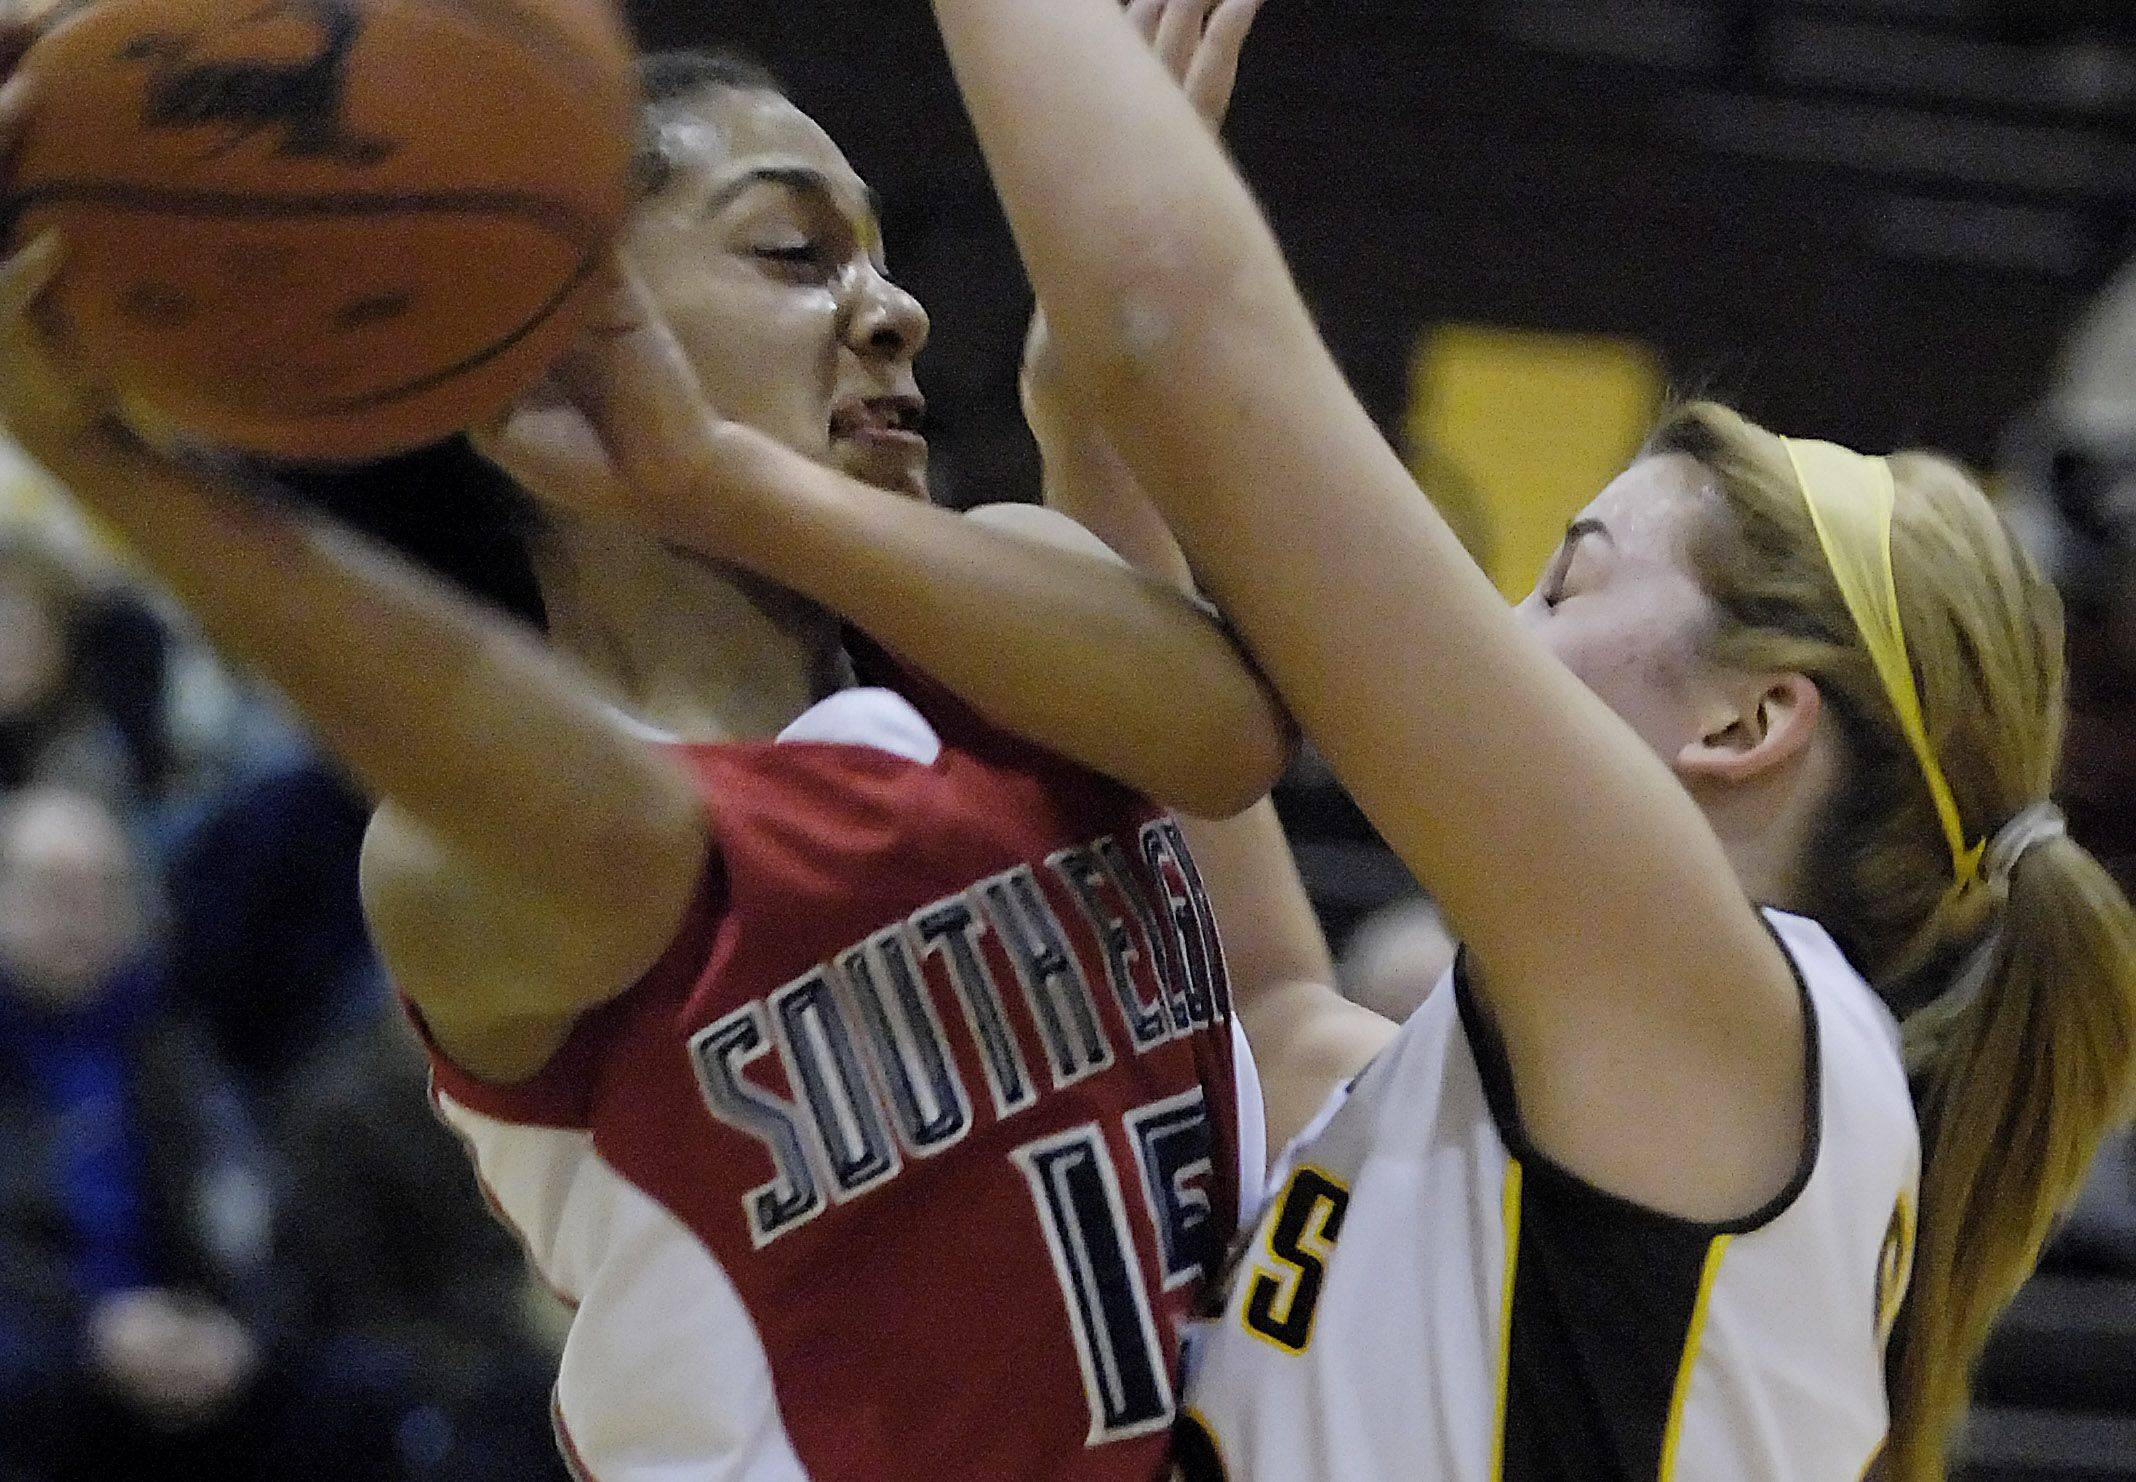 South Elgin's Becca Smith tries to pass around Jacobs' Melanie Schwerdtmann Wednesday in Algonquin.